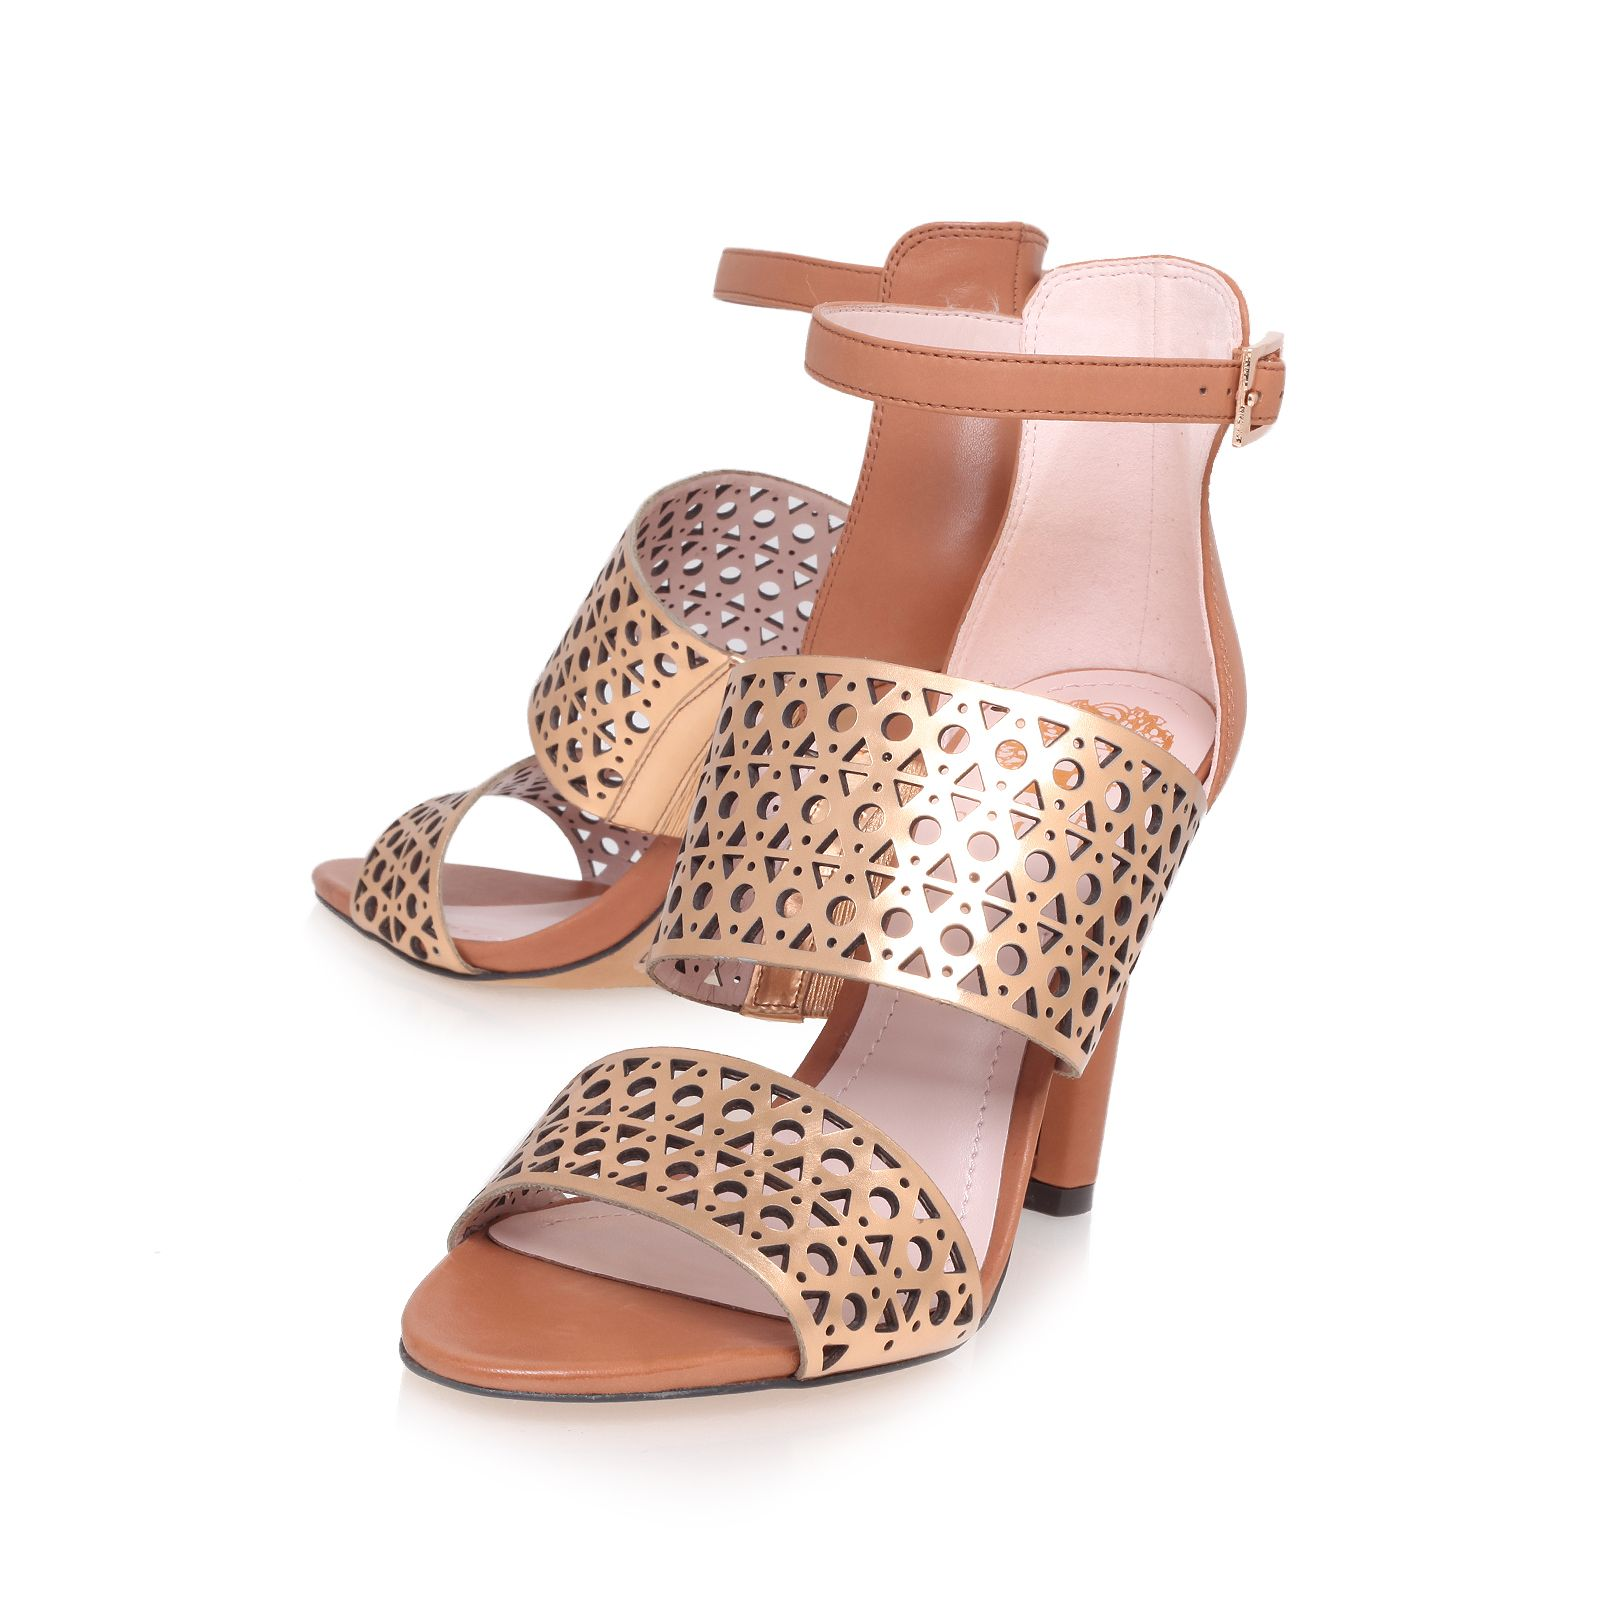 Okeli high heel sandals